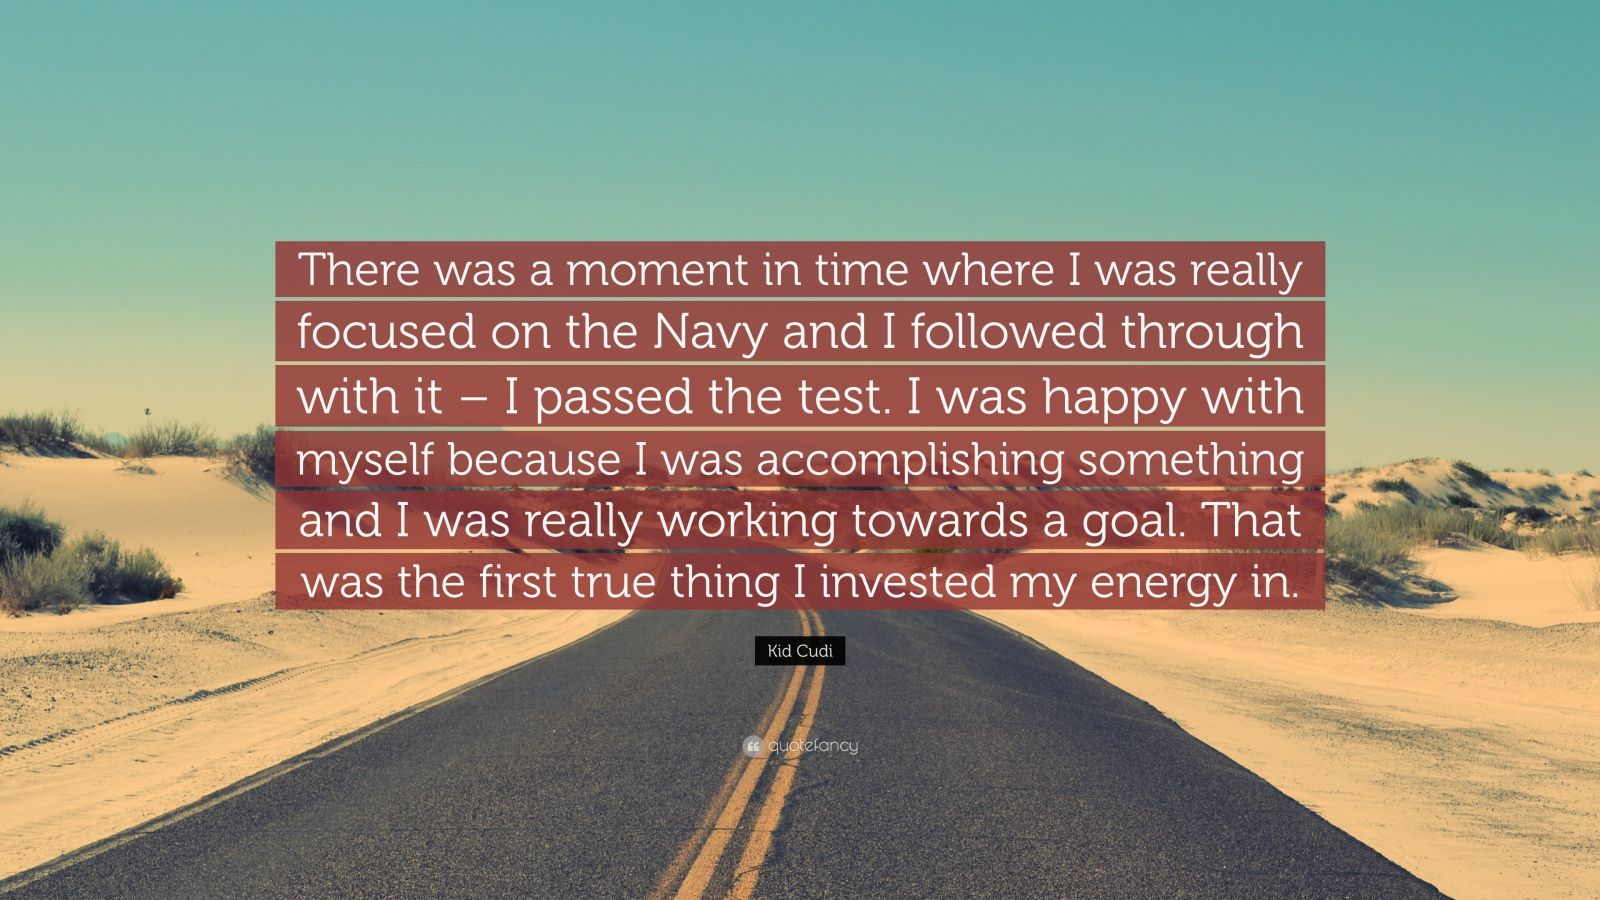 Kid Cudi Quote There Was A Moment In Time Where I Was Really Focused On The Navy And I